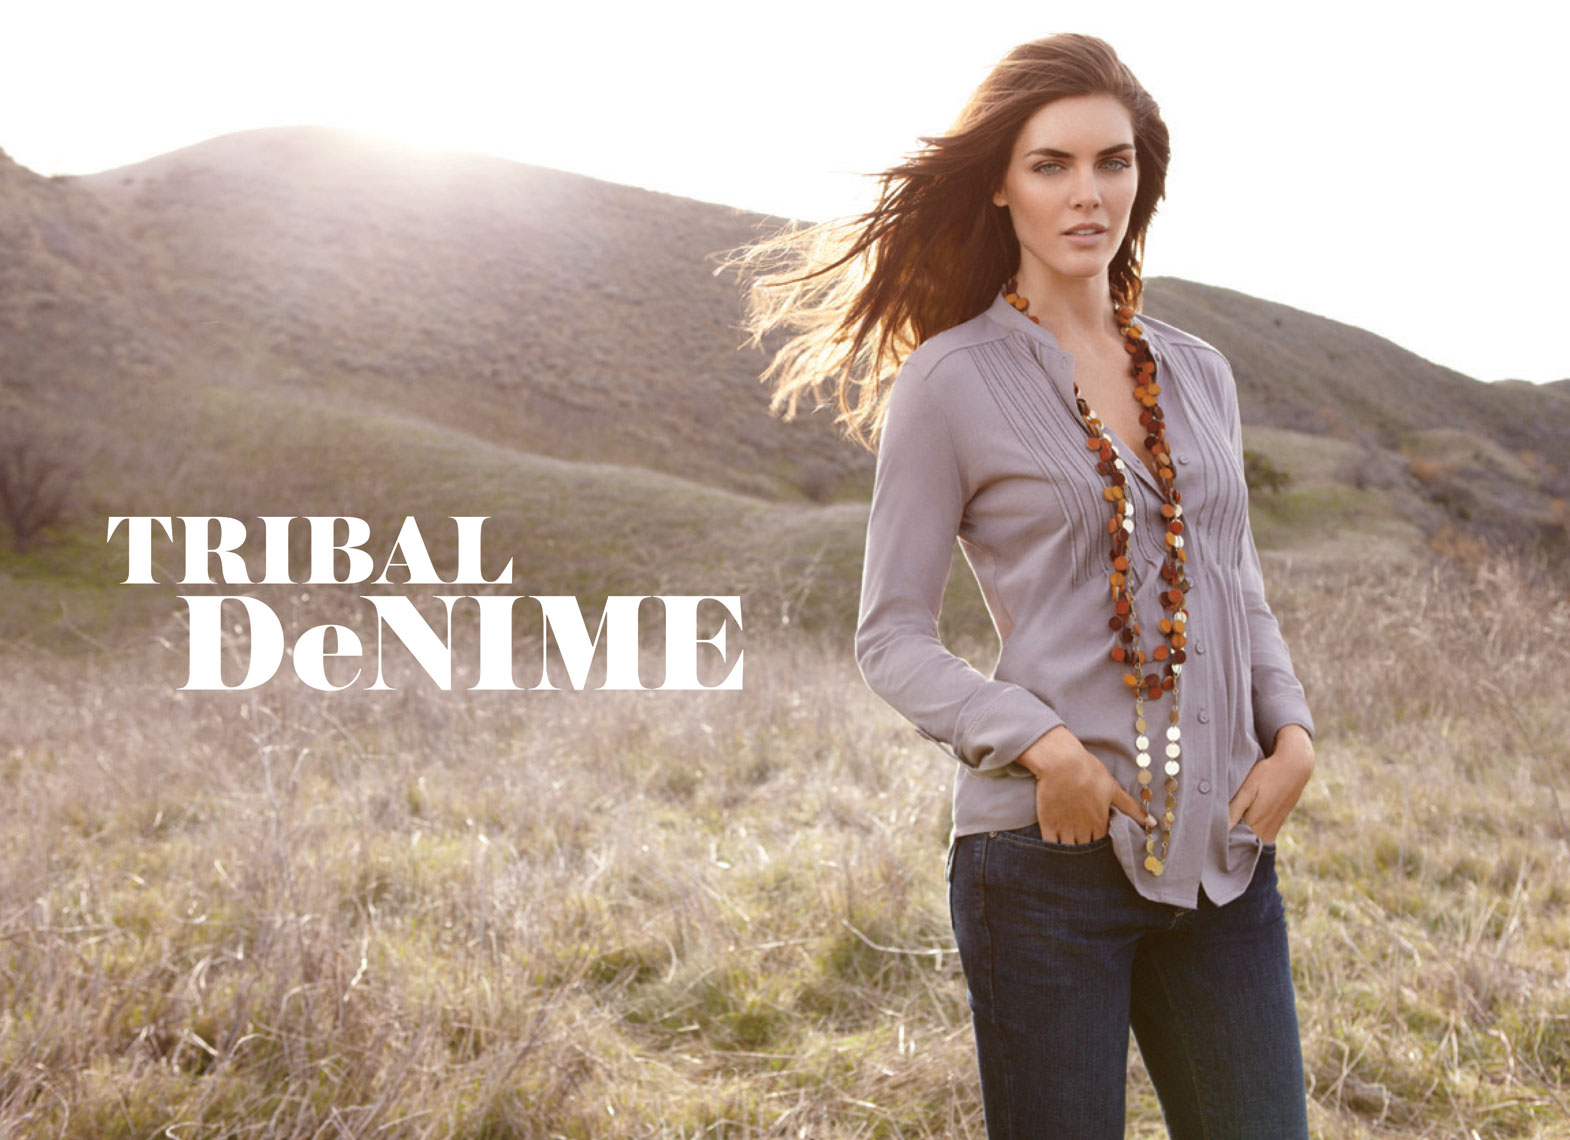 Tribal+Denime-11-images-9